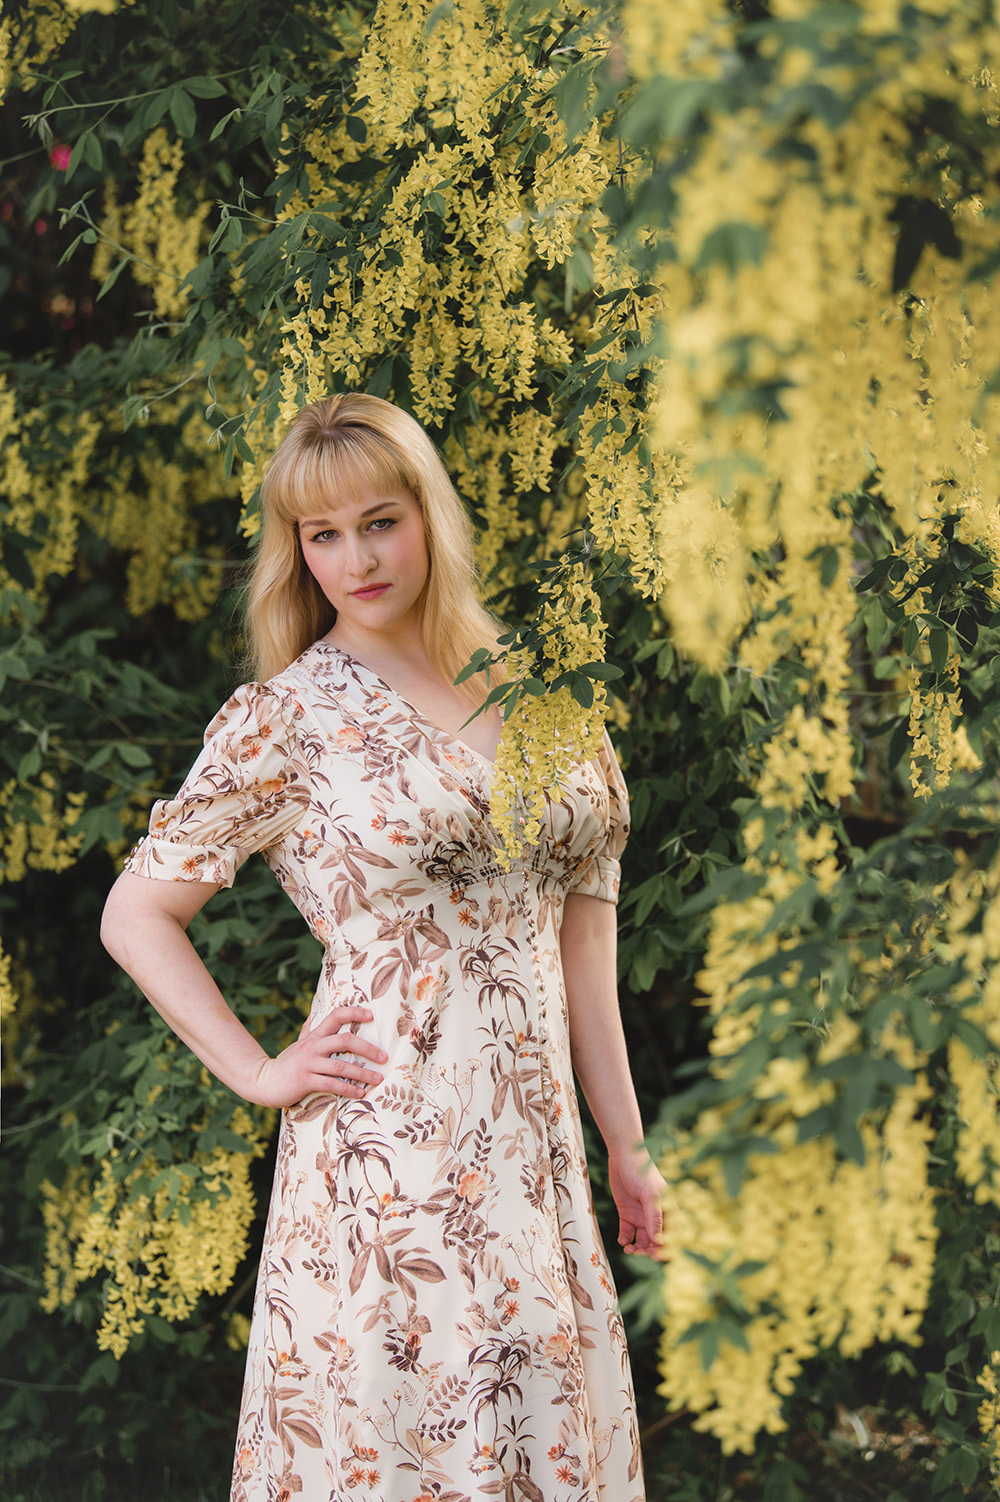 College Senior Pictures_graduation photo of blonde girl in floral dress in yellow flowers_Studio B Portraits_Nelson_4477.jpg